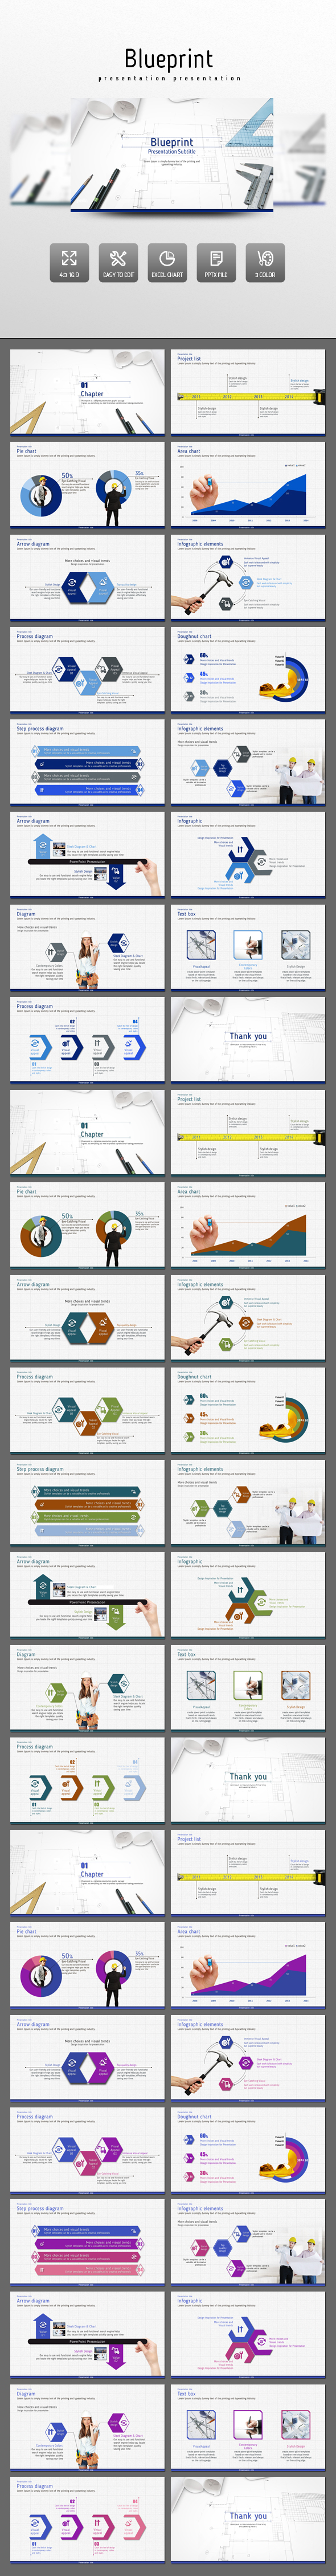 Blueprint PowerPoint Presentation Template #design #slides Download:  Http://graphicriver.net/item/blueprint/14137250?refu003dksioks